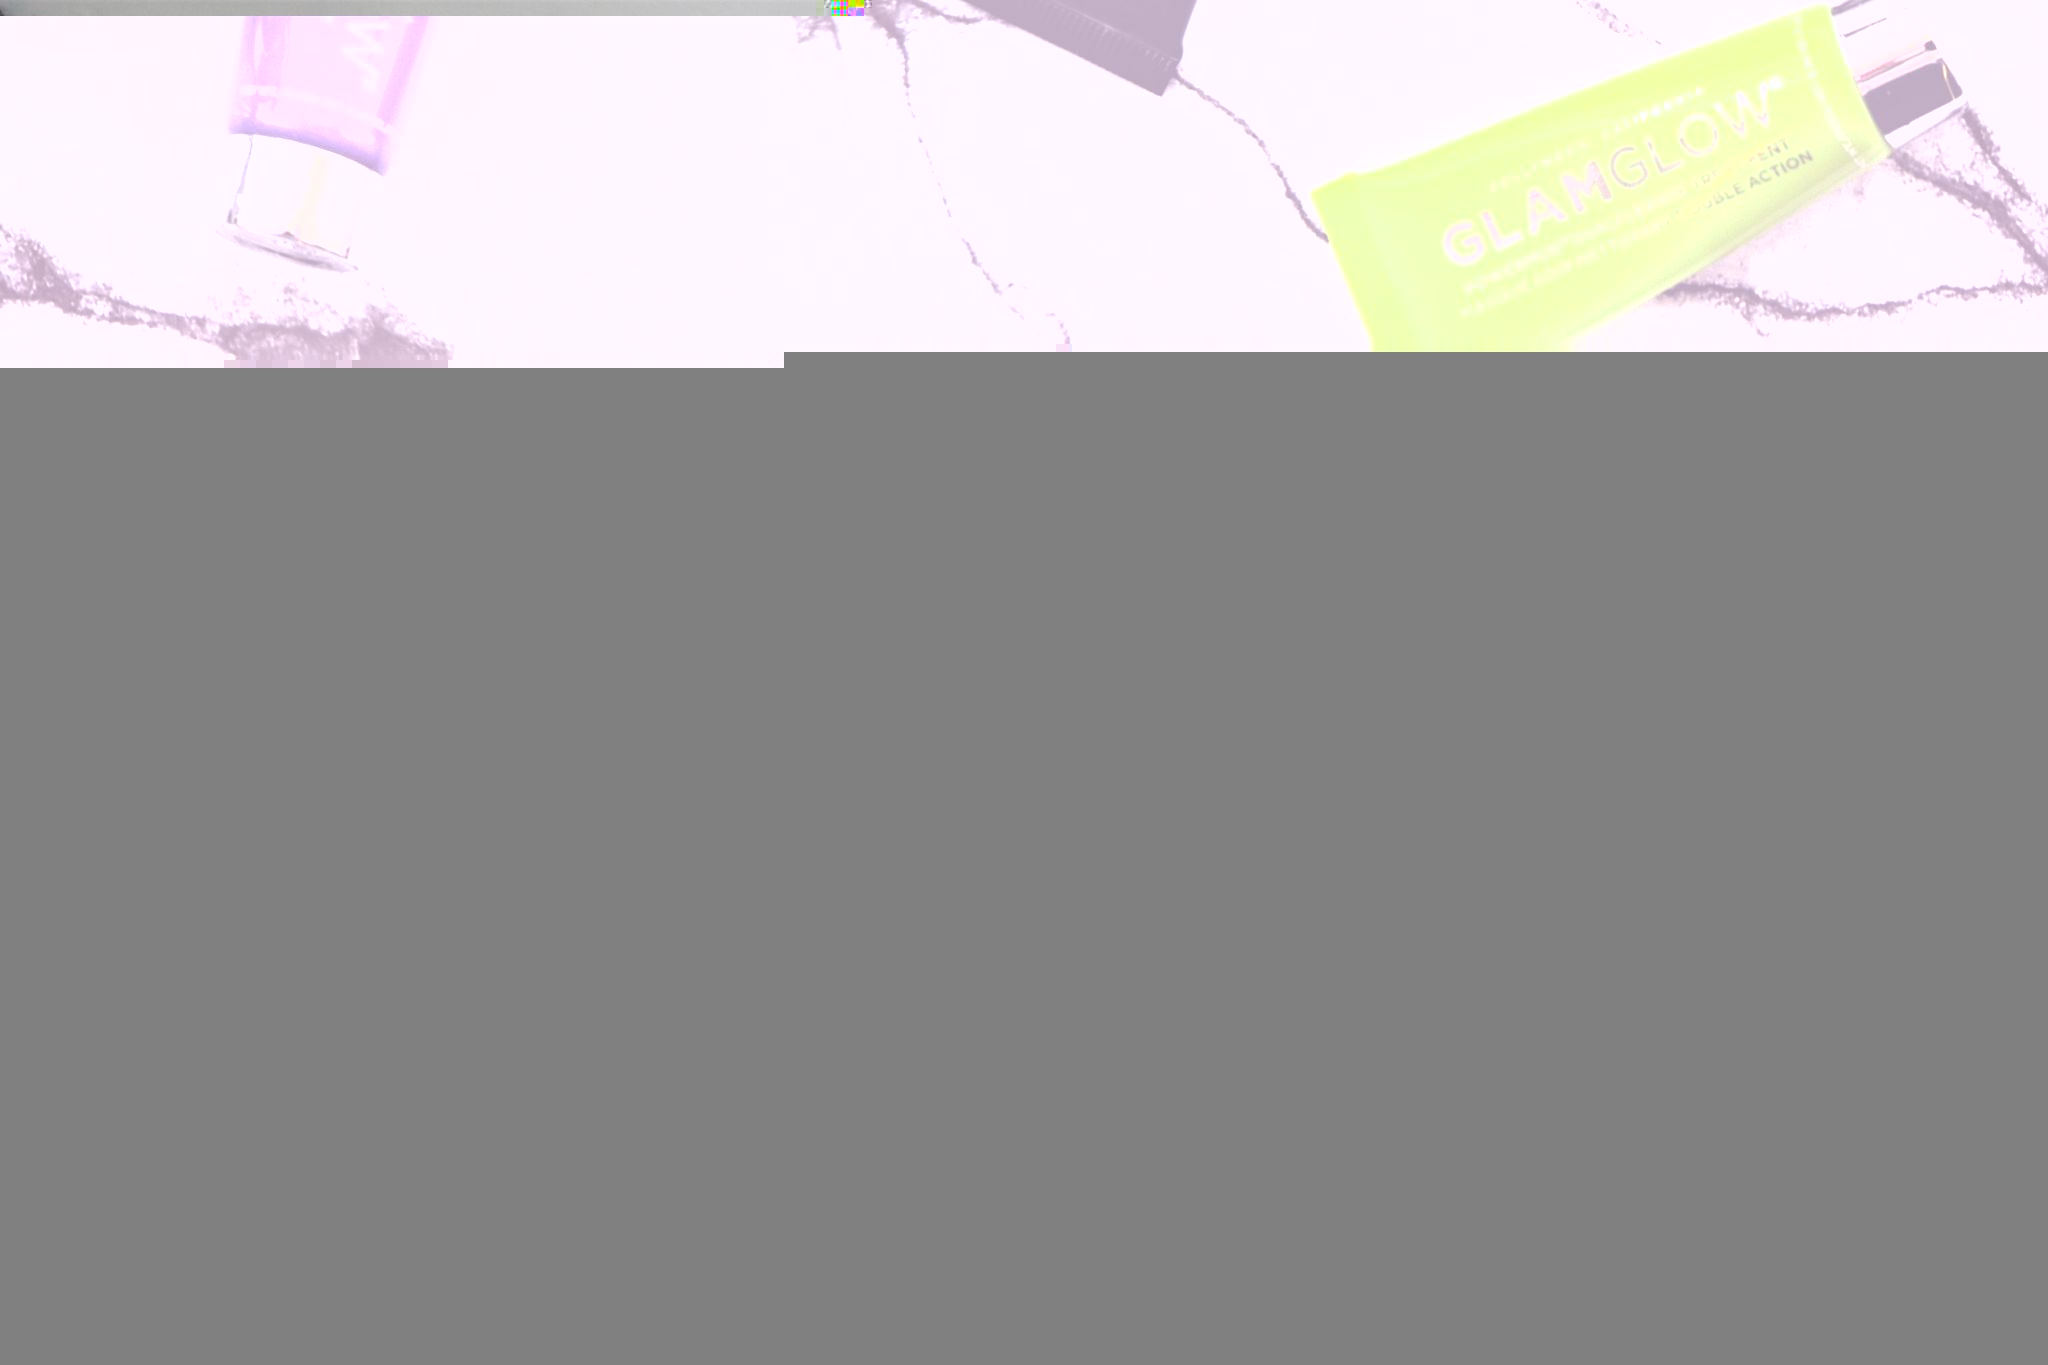 DSC 3362 1440x960 - My GlamGlow Obsession